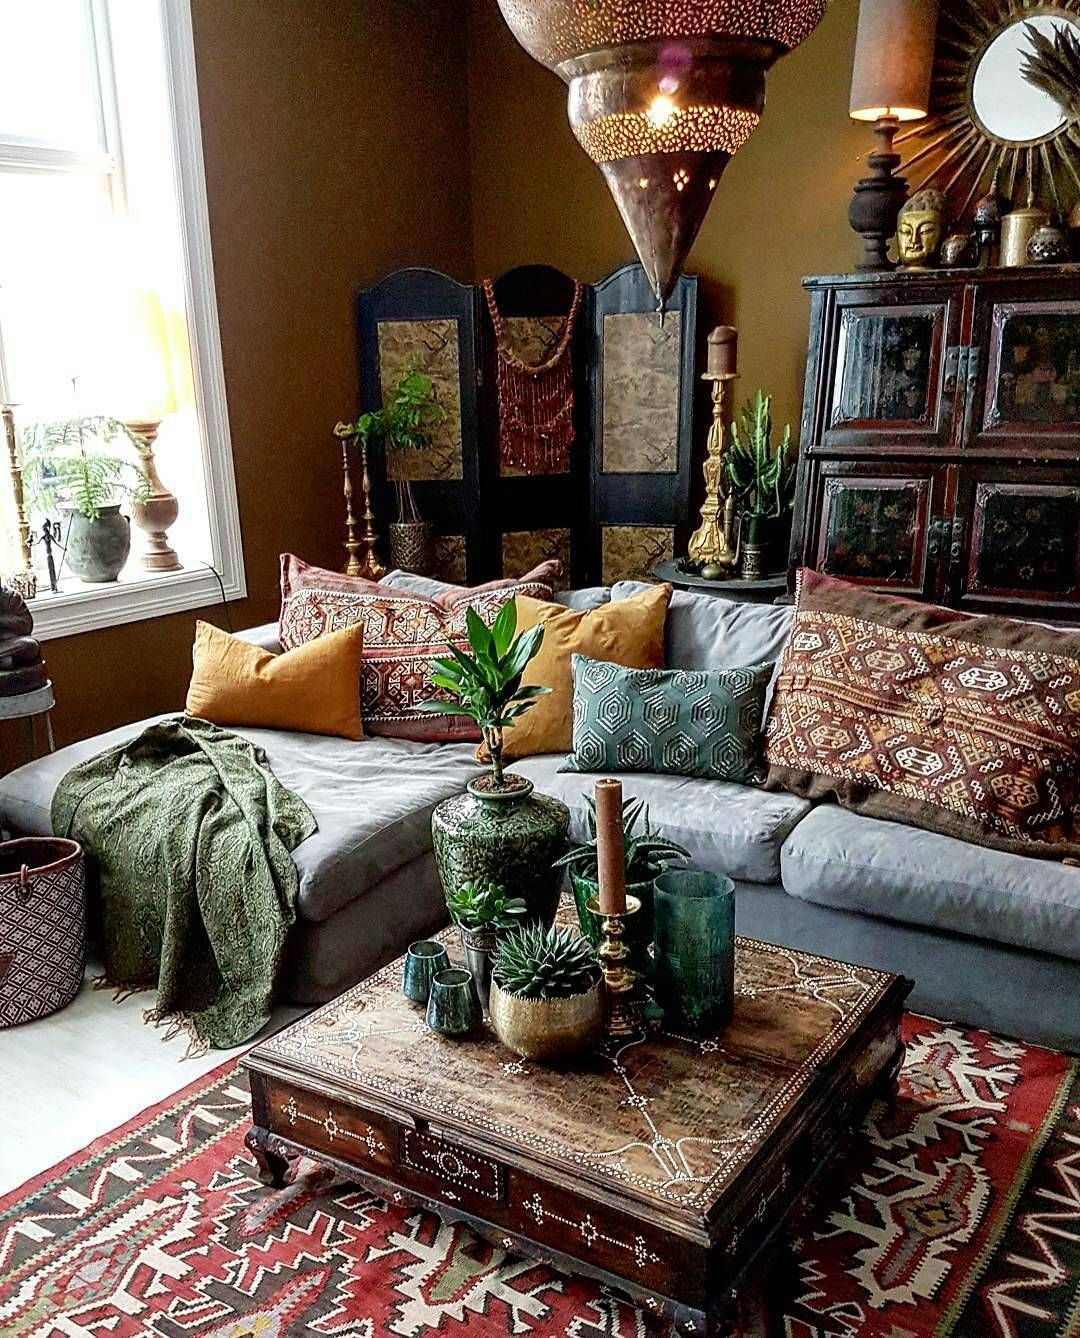 Worldwide Decor Moroccan Style Basics 4 moroccan style Worldwide Decor: Moroccan Style Basics Worldwide Decor Moroccan Style Basics 4